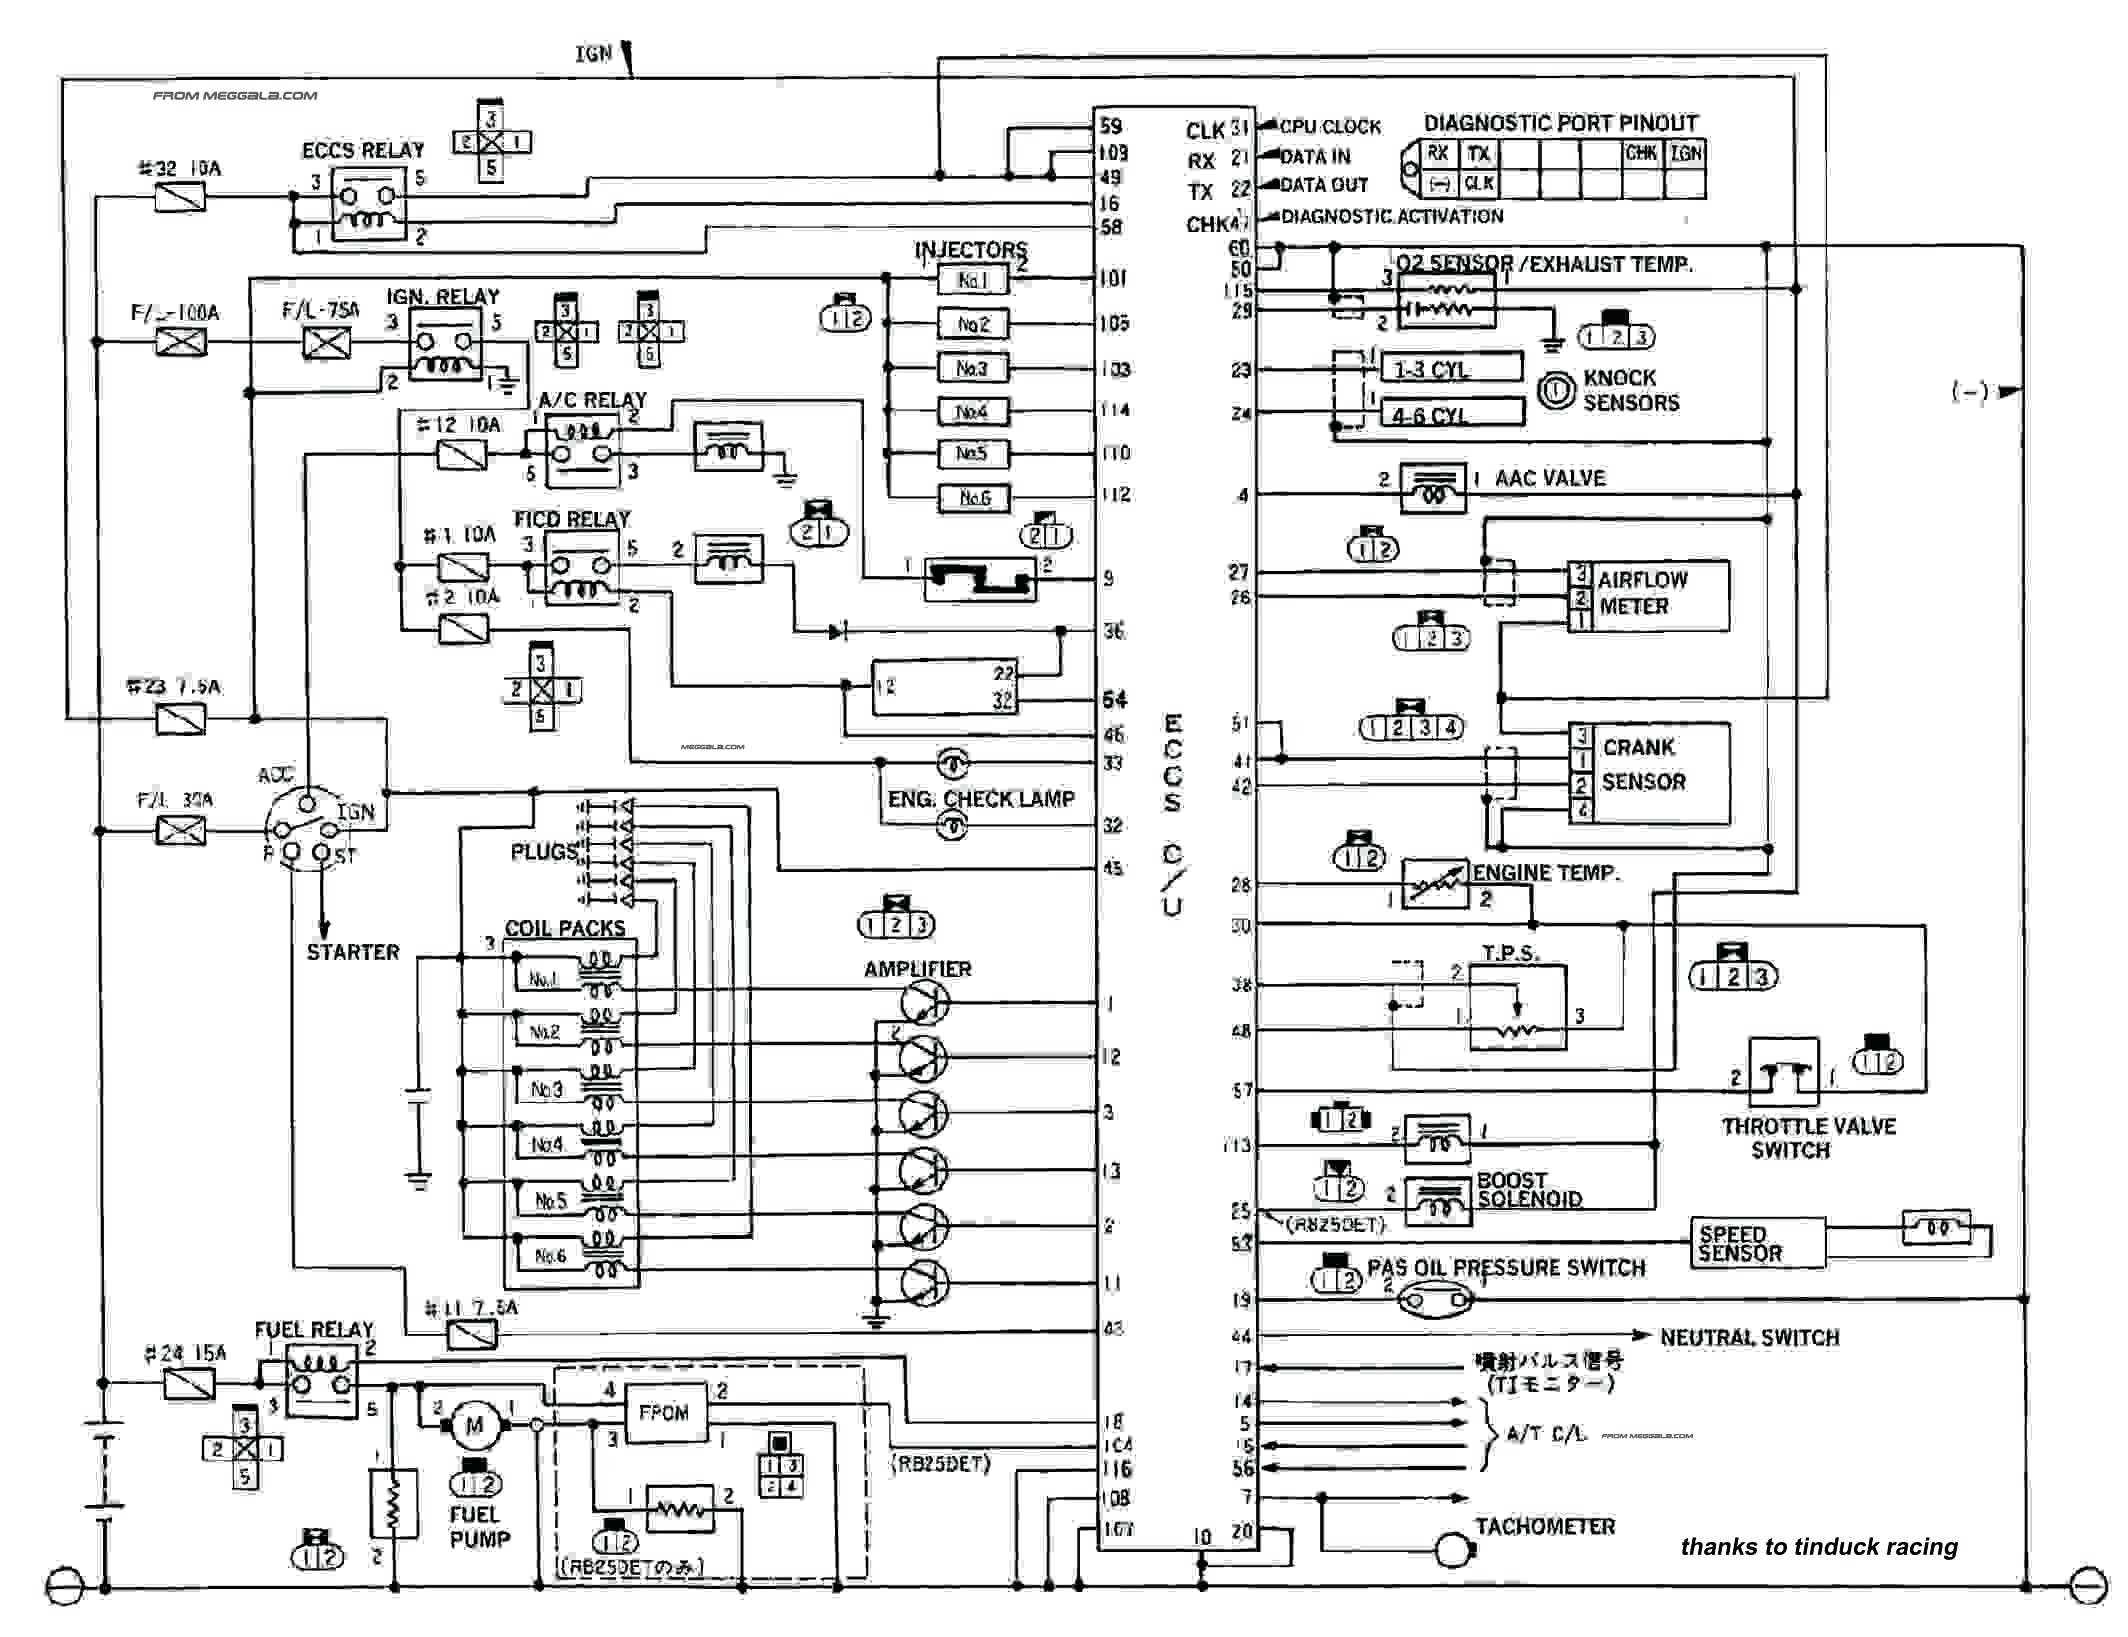 Full Size of Wiring Diagram For Friedland Doorbell Diagrams Triangle fense Timing Led Christmas Light String